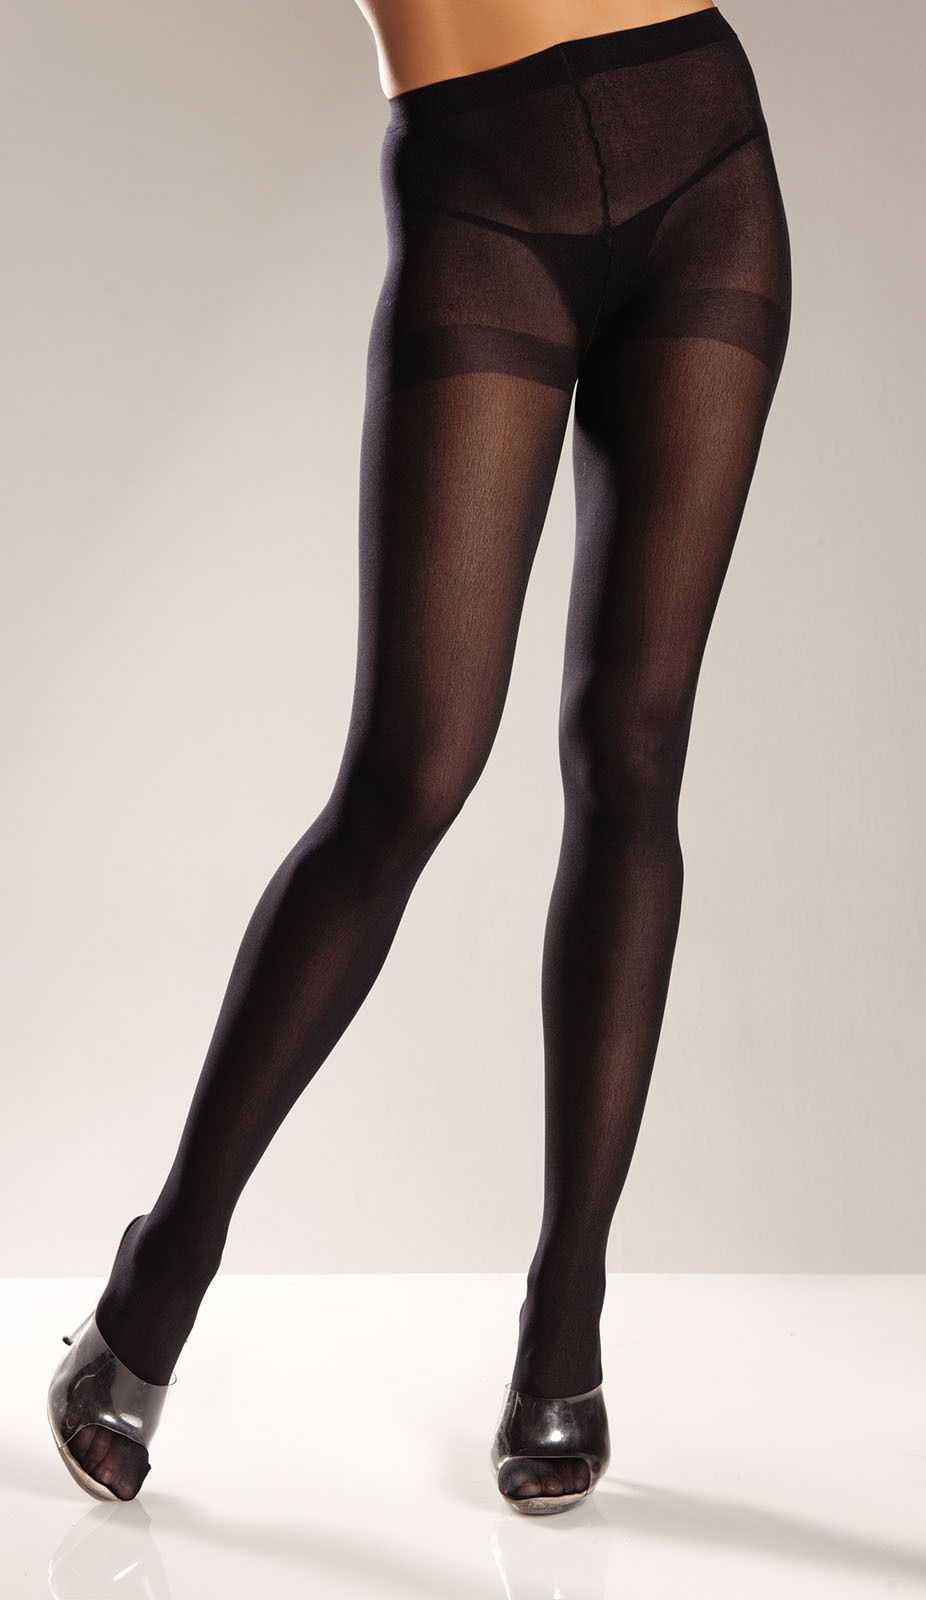 caa720cb57fc0 Be Wicked Full Length Costume Stockings Women'S Opaque Tights Cosplay  Pantyhose